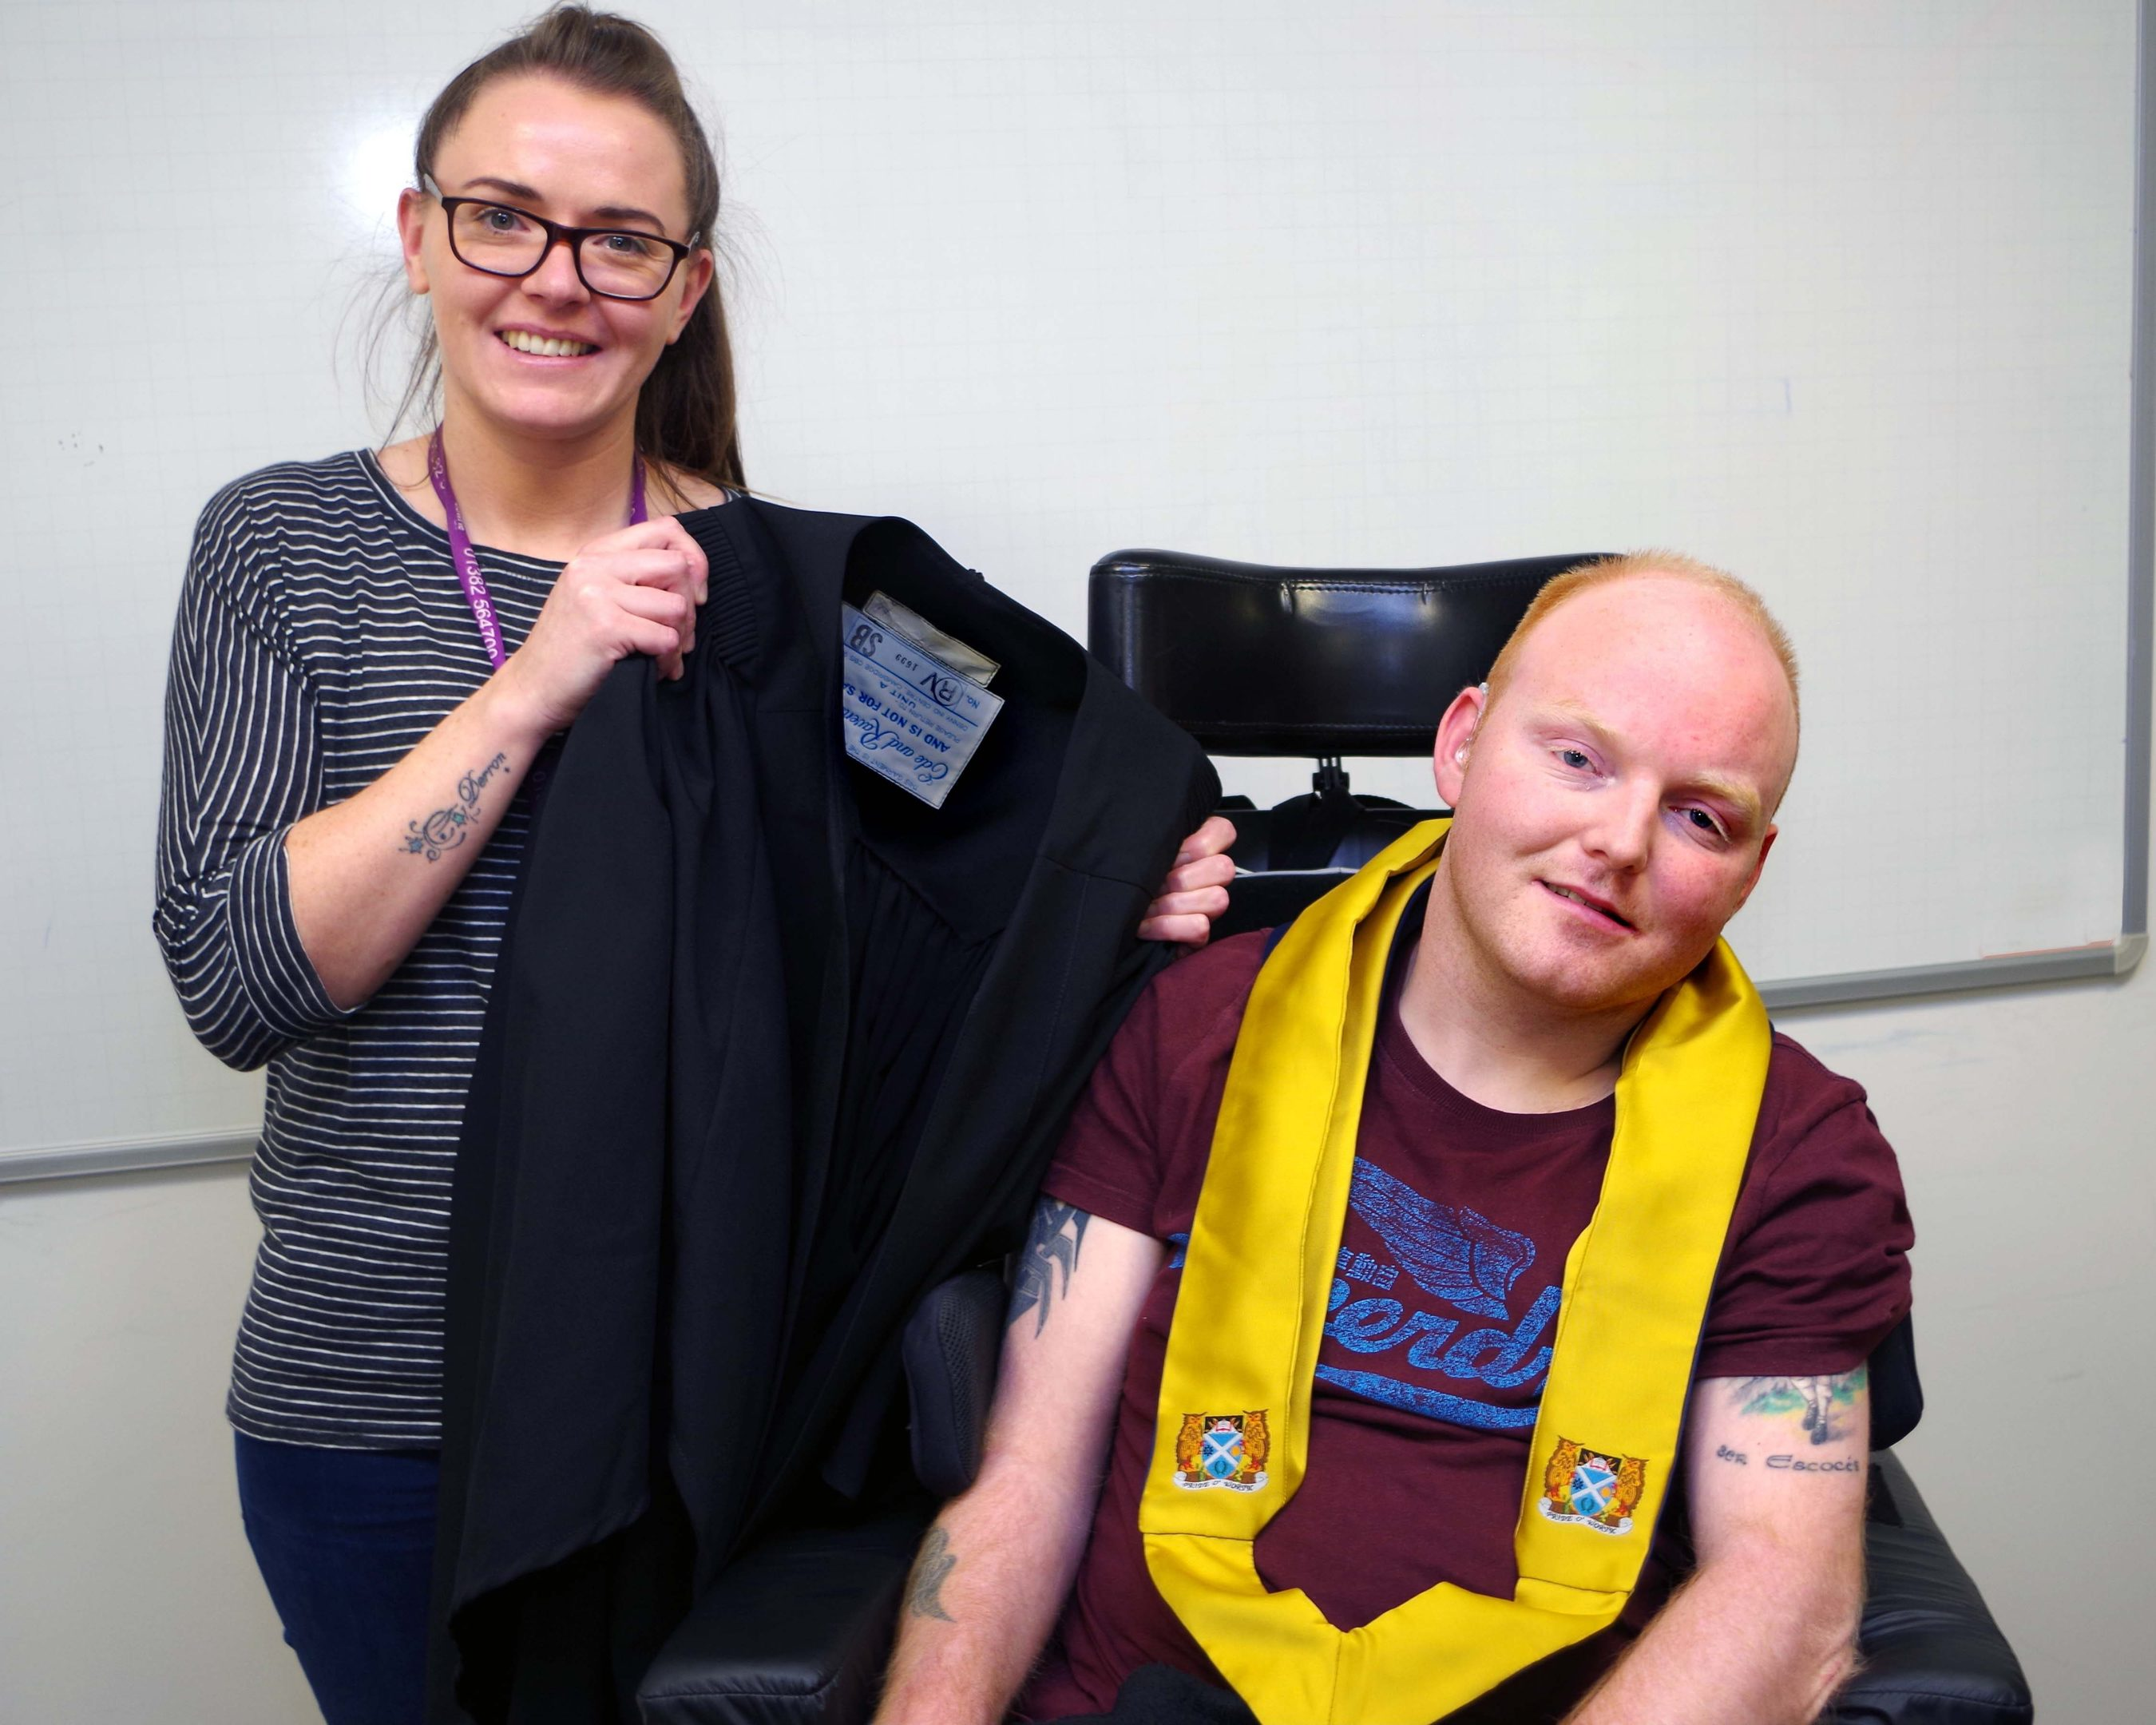 Stewart tries on a graduation robe with the help of Alanna Duncan, support worker for Gowrie Student Support.